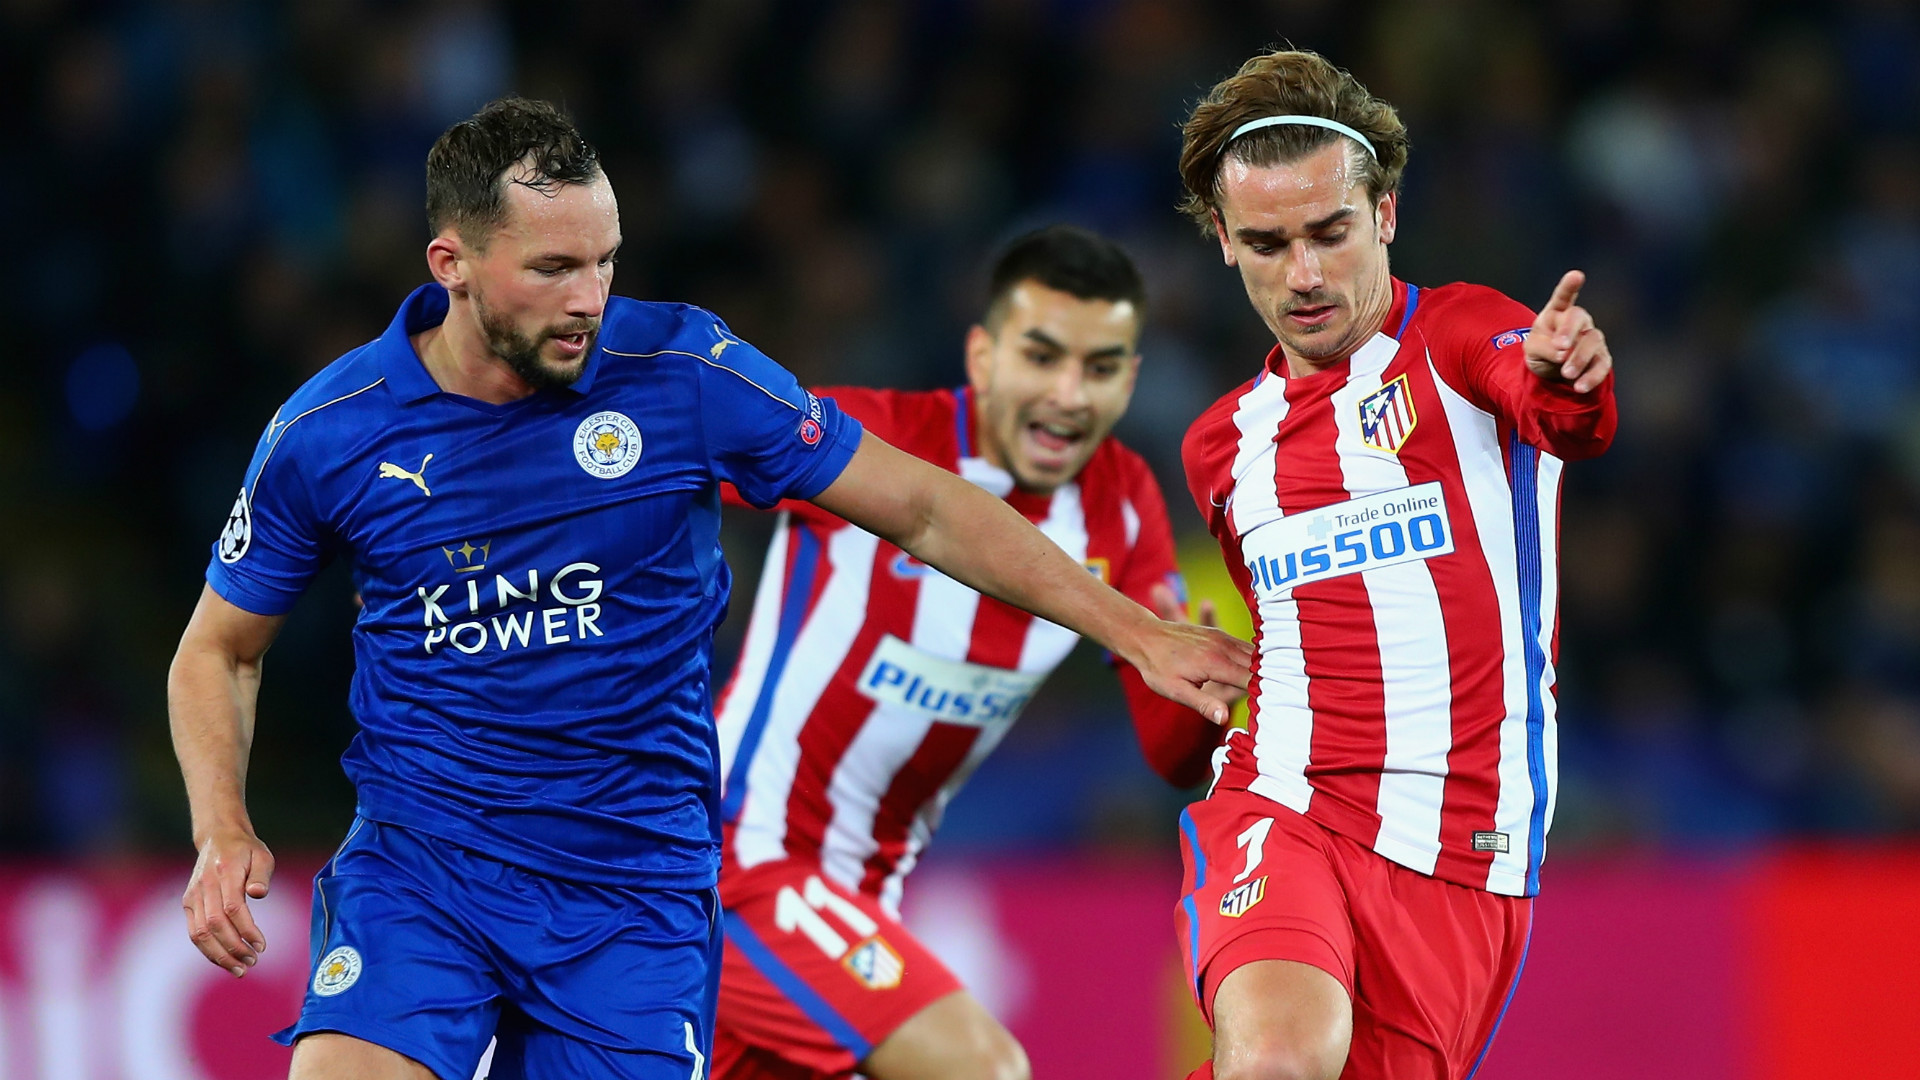 Brave Leicester City Bow Out Of Champions League After Atletico Madrid Draw